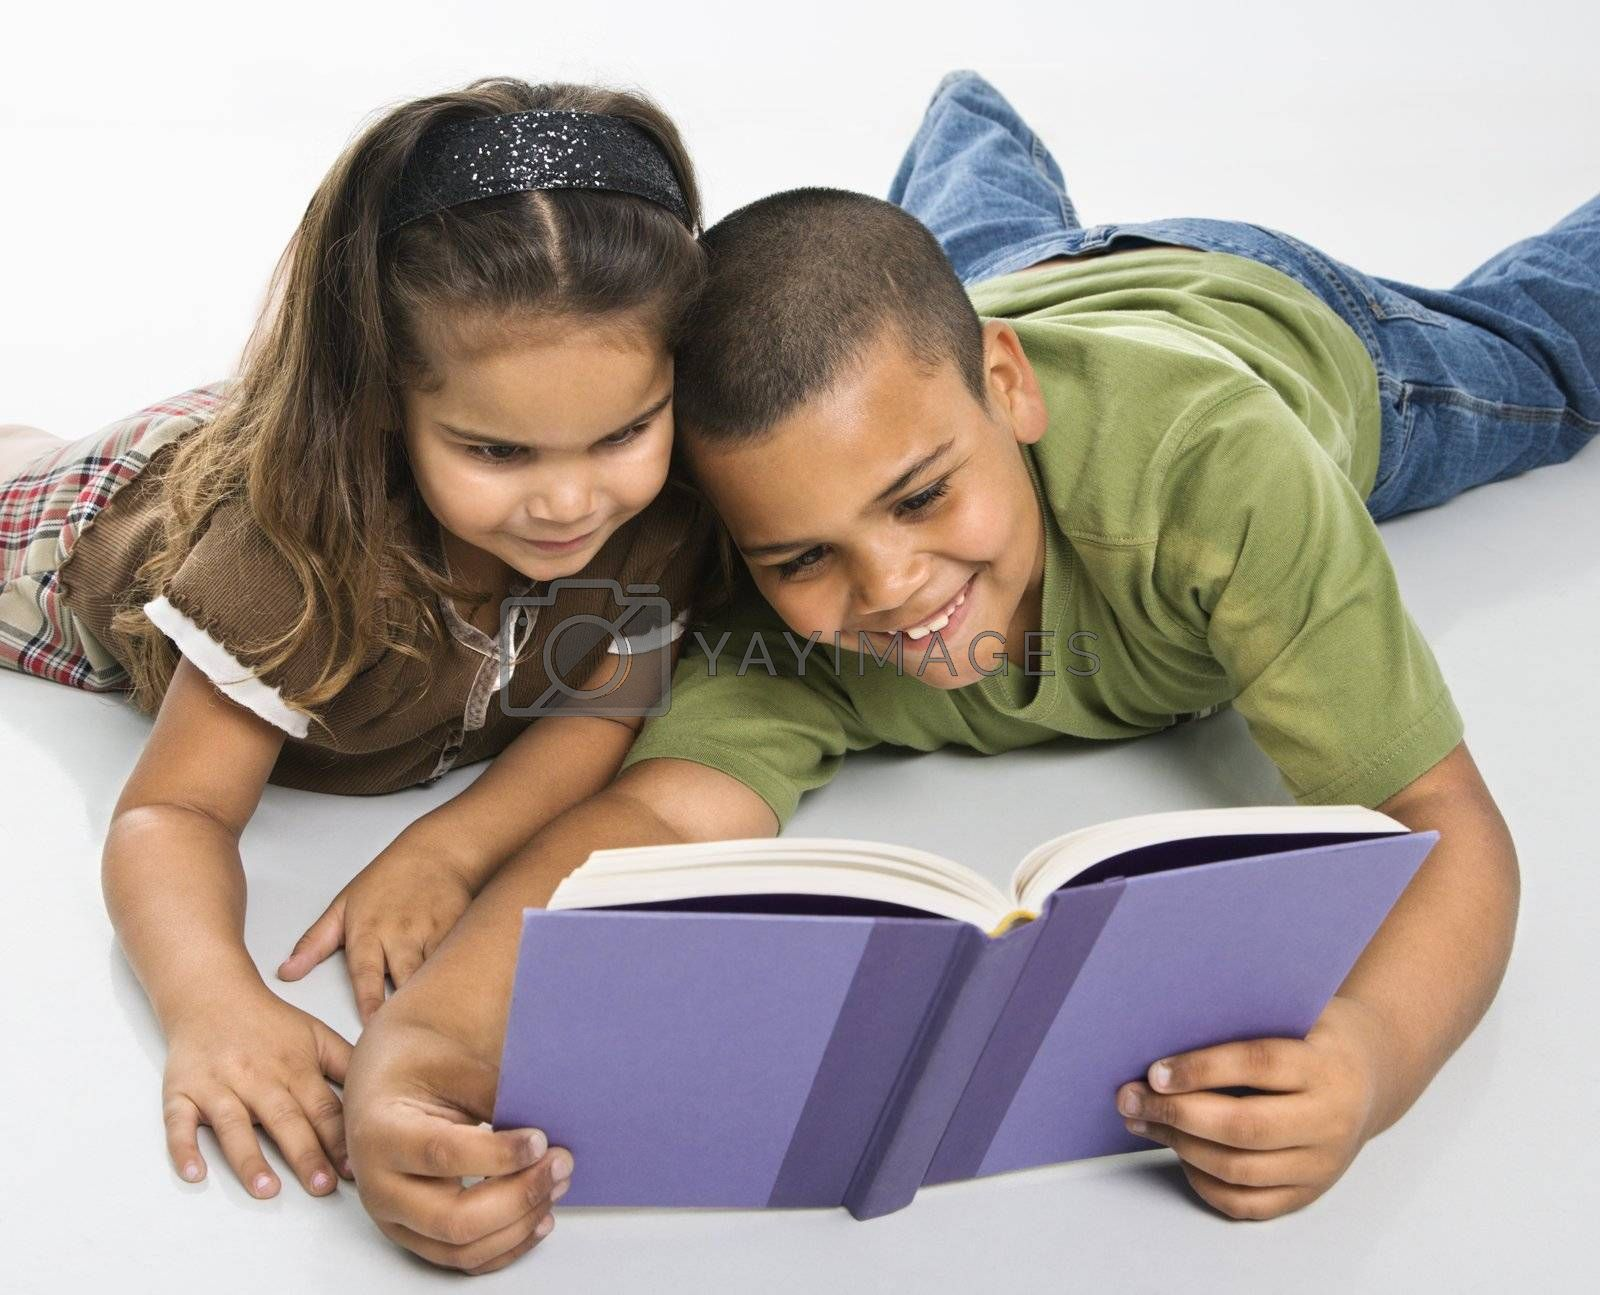 Hispanic brother and sister reading book together sitting on floor.